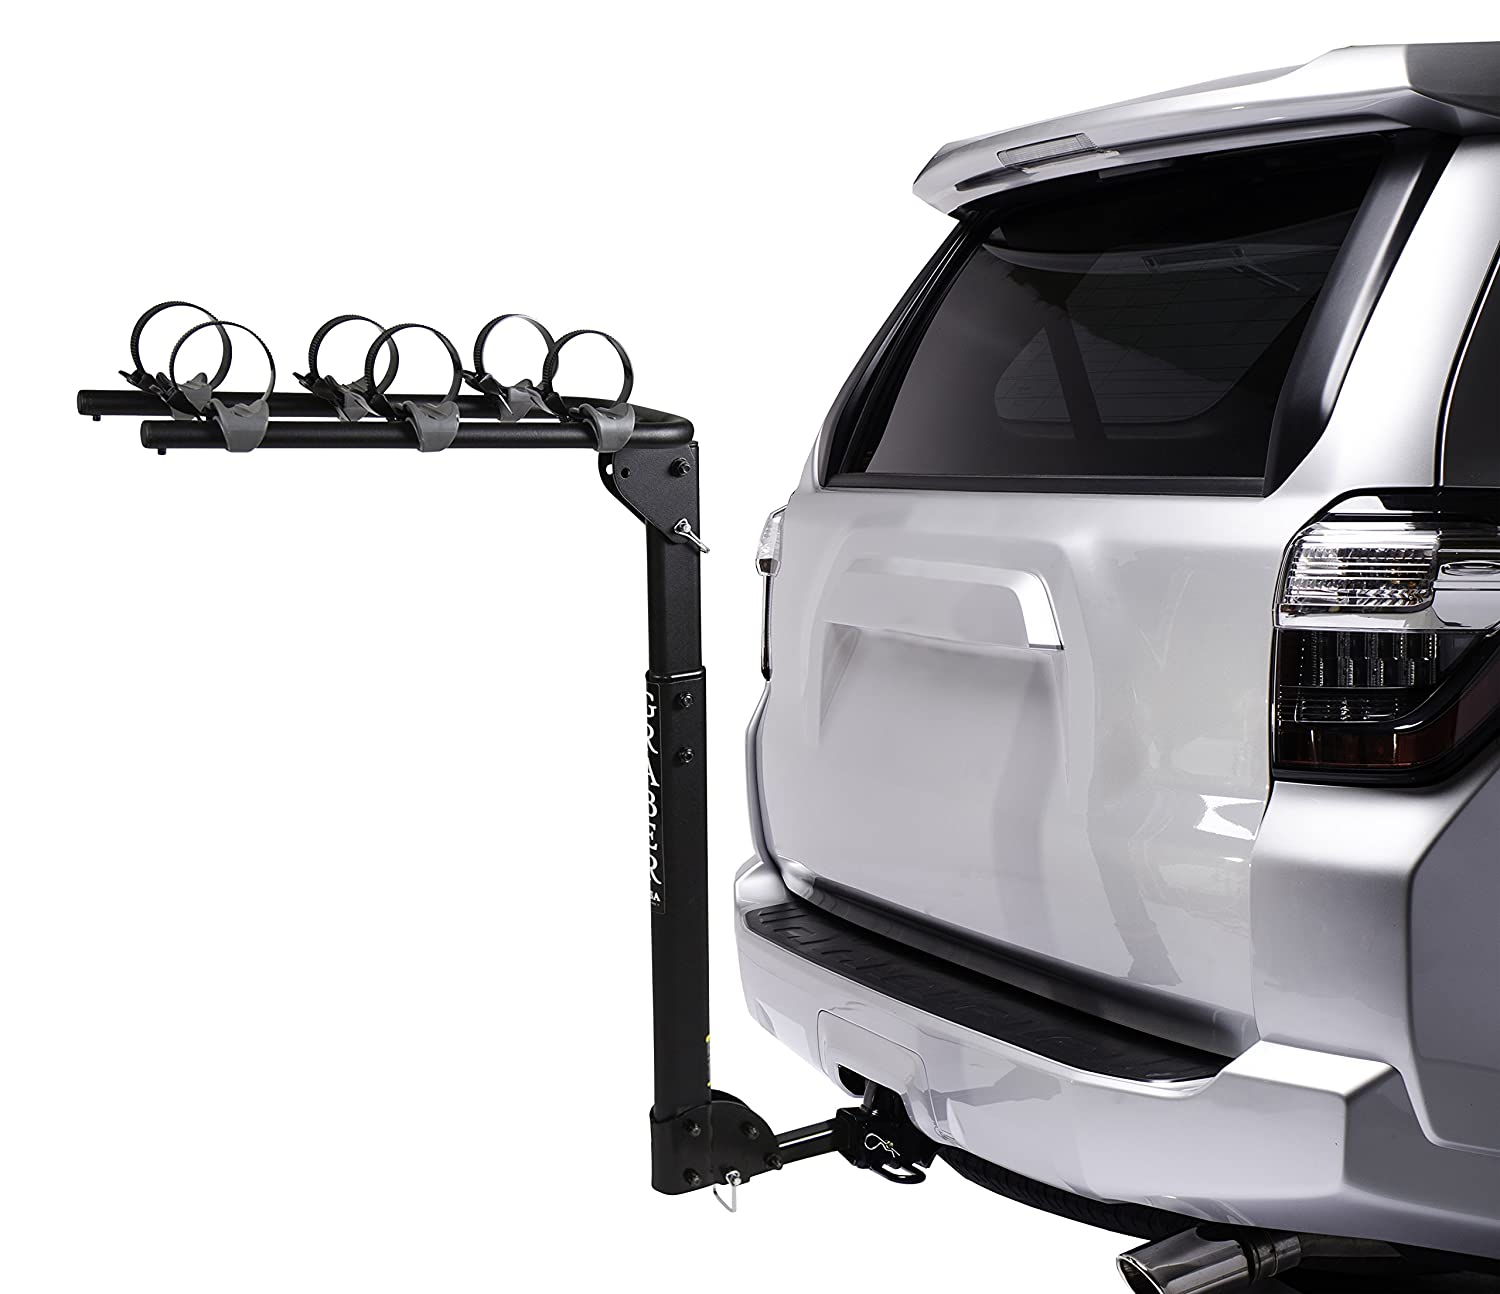 bike sportsrack organize for vehicle advantage heininger hitch asp trunk bicycle racks price rack or deluxe car by it